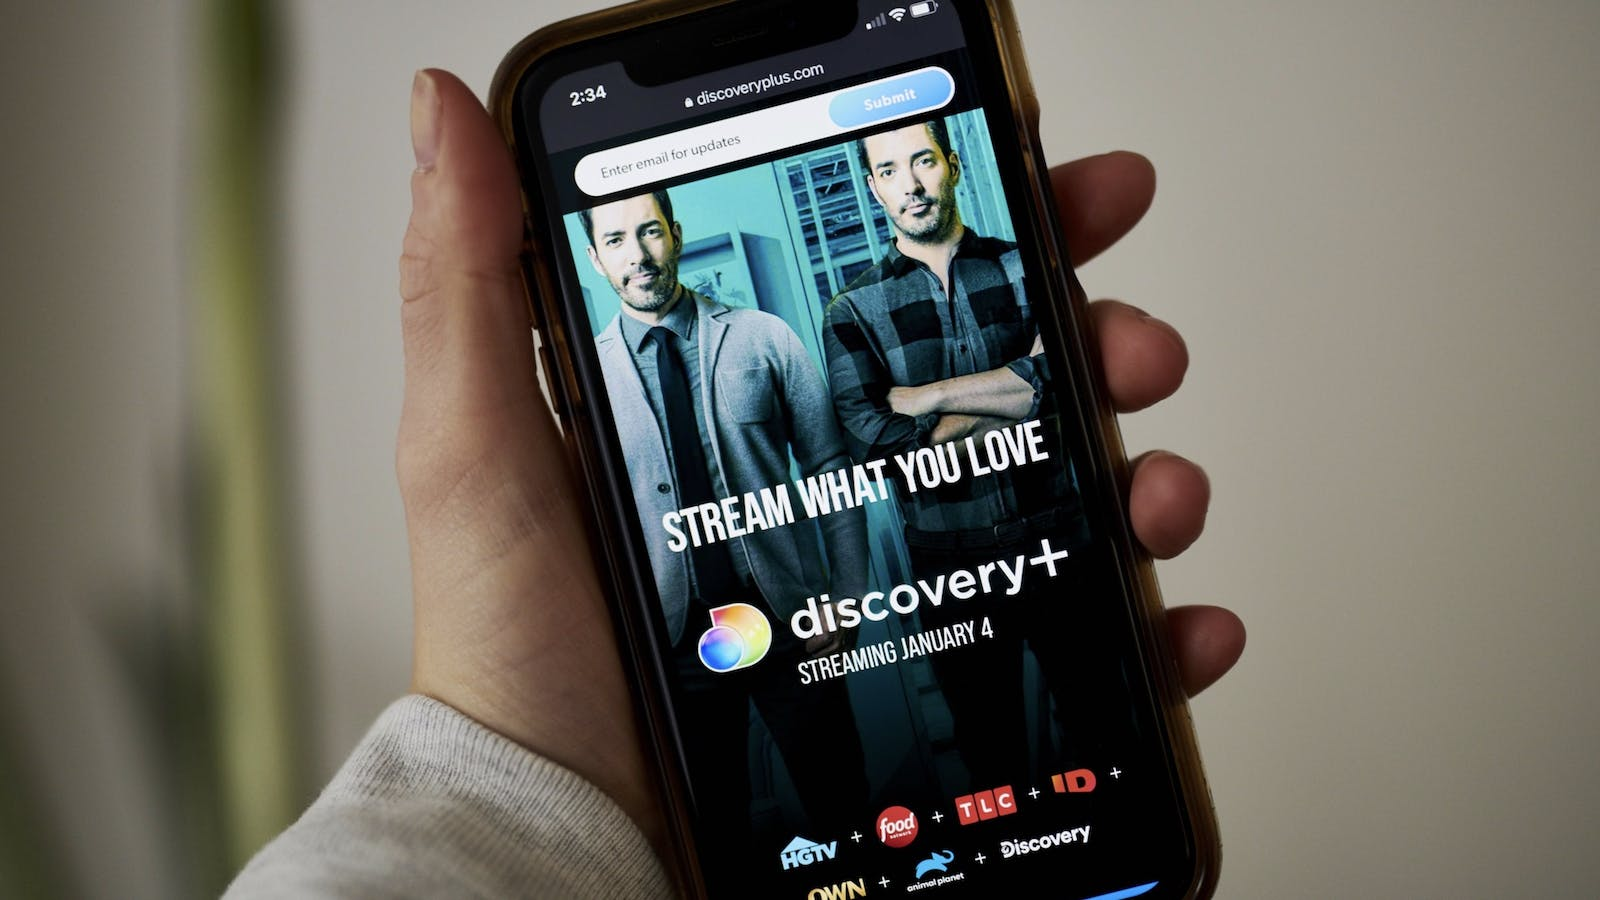 The Discovery+ home screen on a smartphone. Photo by Bloomberg